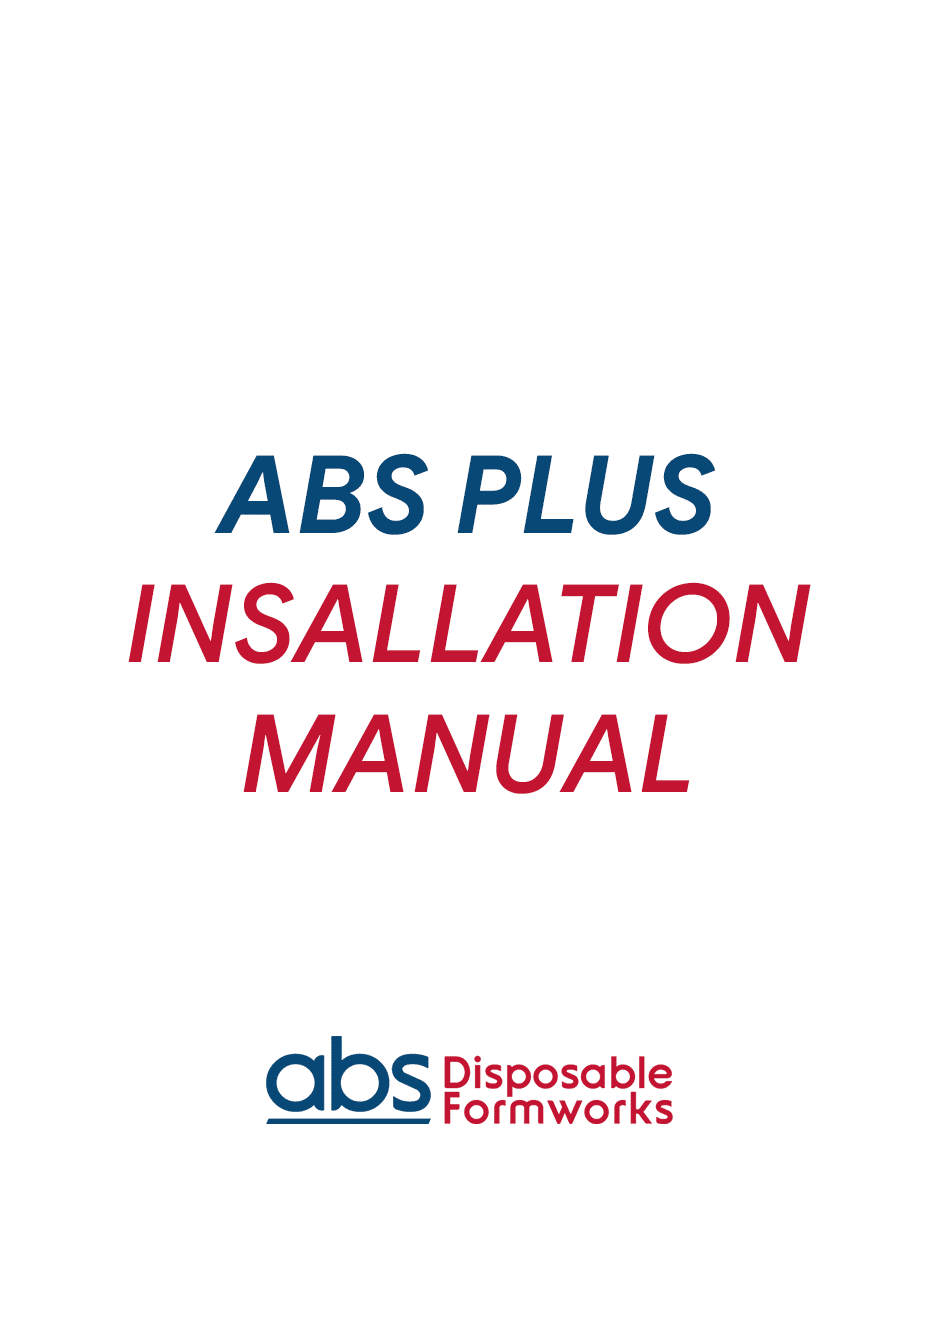 ABS_PLUS_INSALLATION_MANUAL